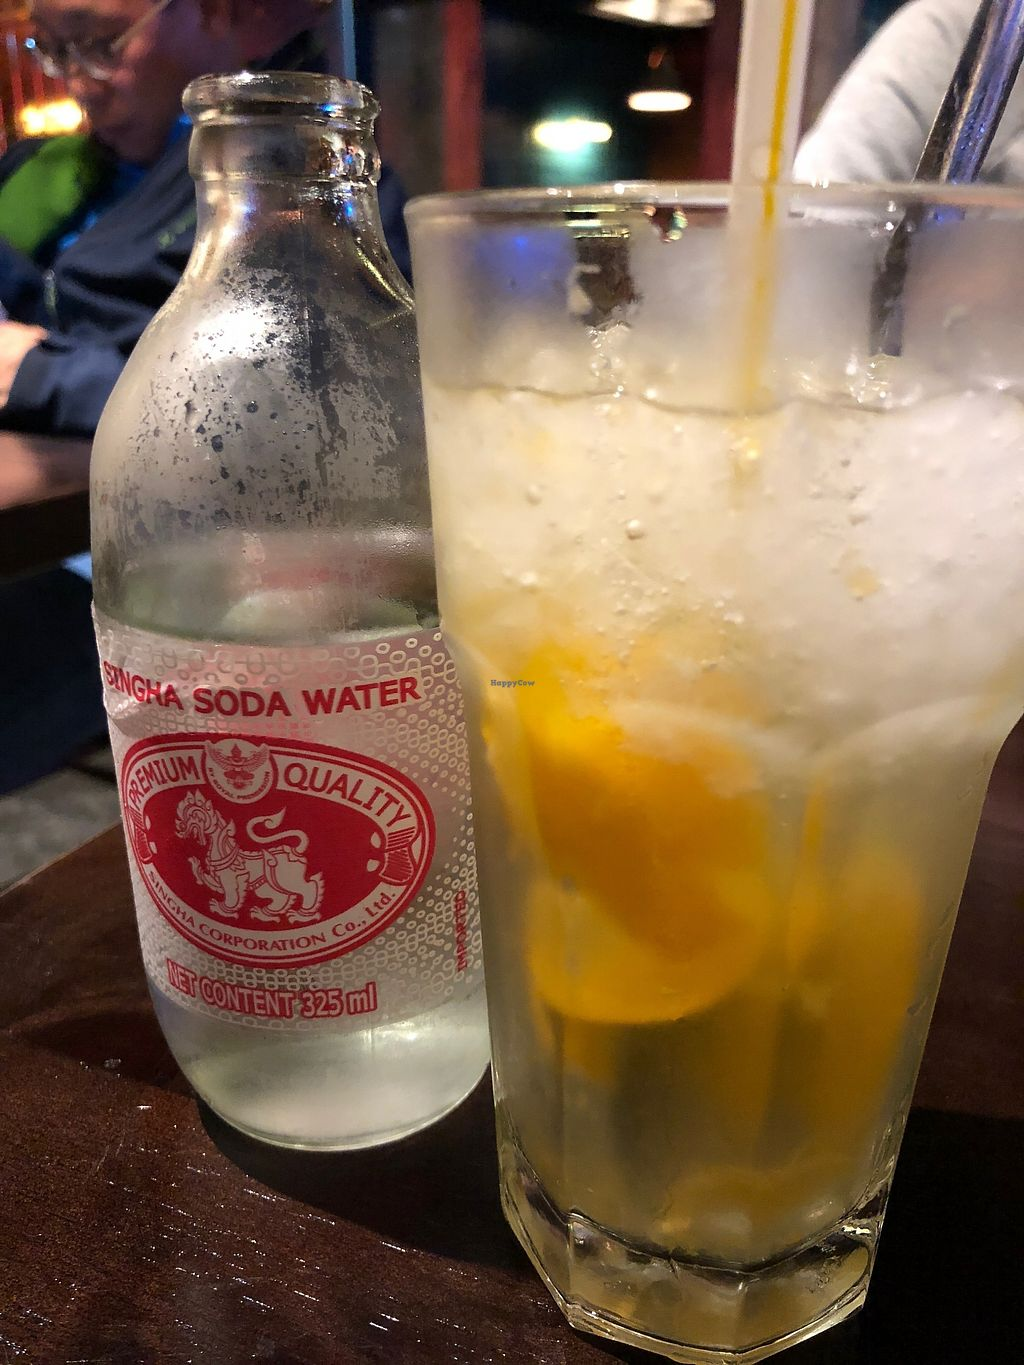 "Photo of Gingko House - Yau Ma Tei  by <a href=""/members/profile/SamanthaIngridHo"">SamanthaIngridHo</a> <br/>Salty mandarin orange soda water <br/> April 13, 2018  - <a href='/contact/abuse/image/117482/385057'>Report</a>"